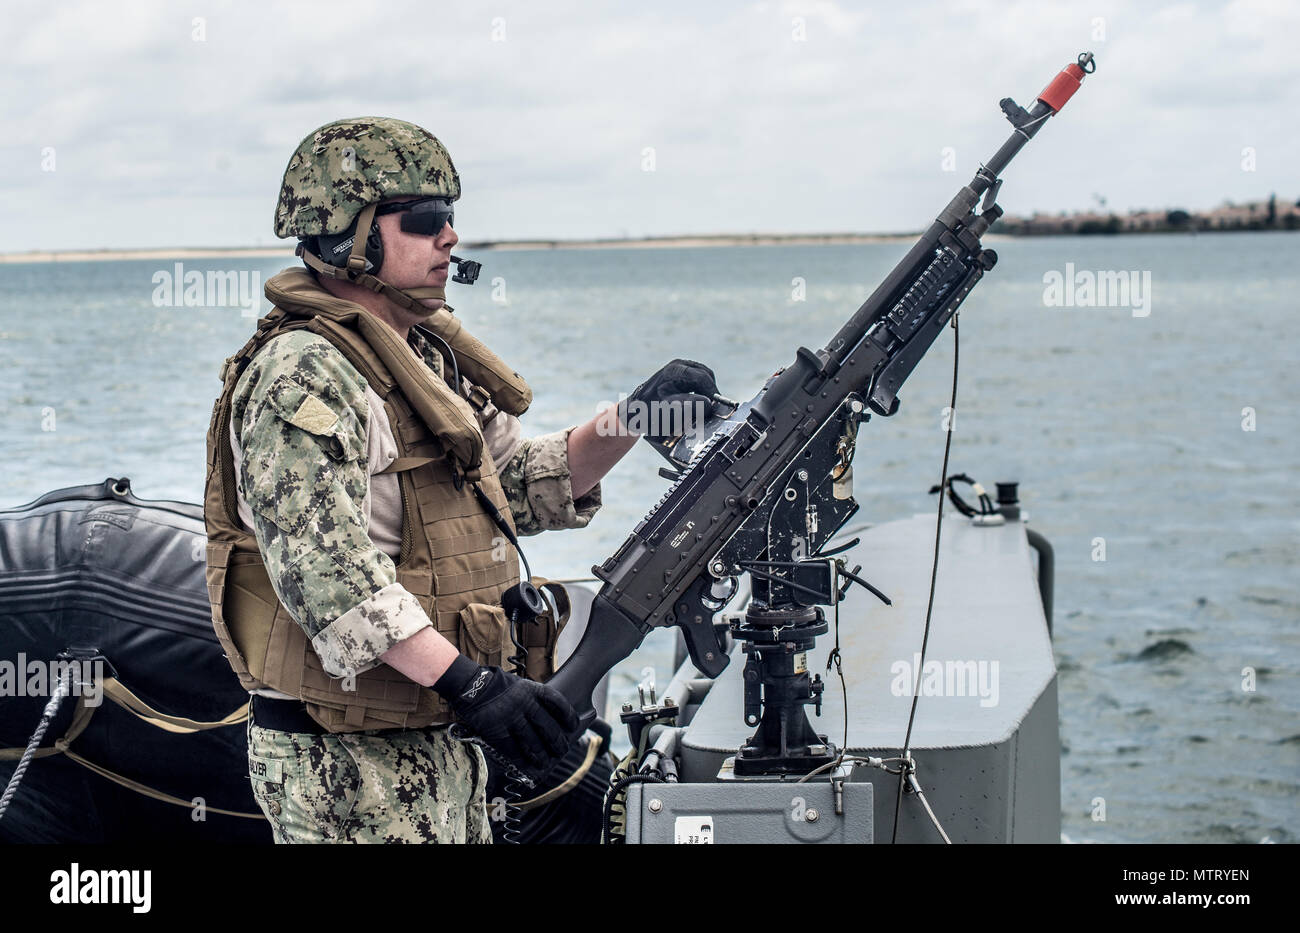 180523-N-NT795-077 SAN DIEGO (May 23, 2018) Hull Maitenance Technician 2nd Class Tim Salyer assigned to Coastal Riverine Squadron (CRS) 3 mans athe M240 machine gun aboard Mark VI Patrol Boat during high value asset (HVA) escort mission as part of final evaluation problem provided by Coastal Riverine Group (CRG) 1 Training and Evaluation Unit. CRG provides a core capability to defend designated high value assets throughout the green and blue-water environment and providing deployable Adaptive Force Packages (AFP) worldwide in an integrated, joint and combined theater of operations. (U.S. Navy  - Stock Image